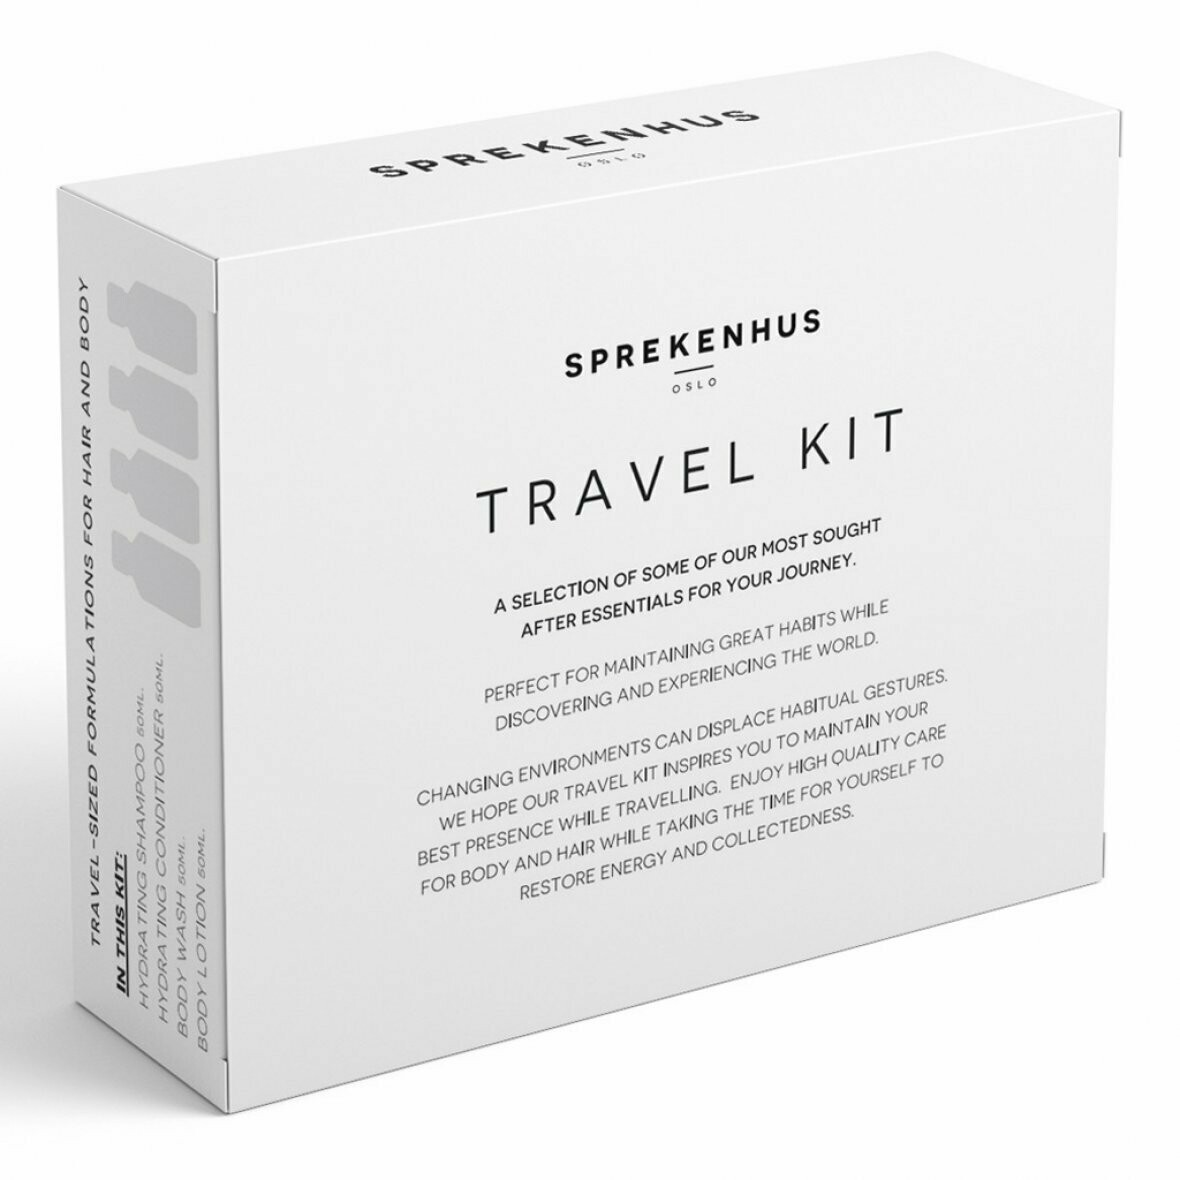 SPREKENHUS - Travel Kit